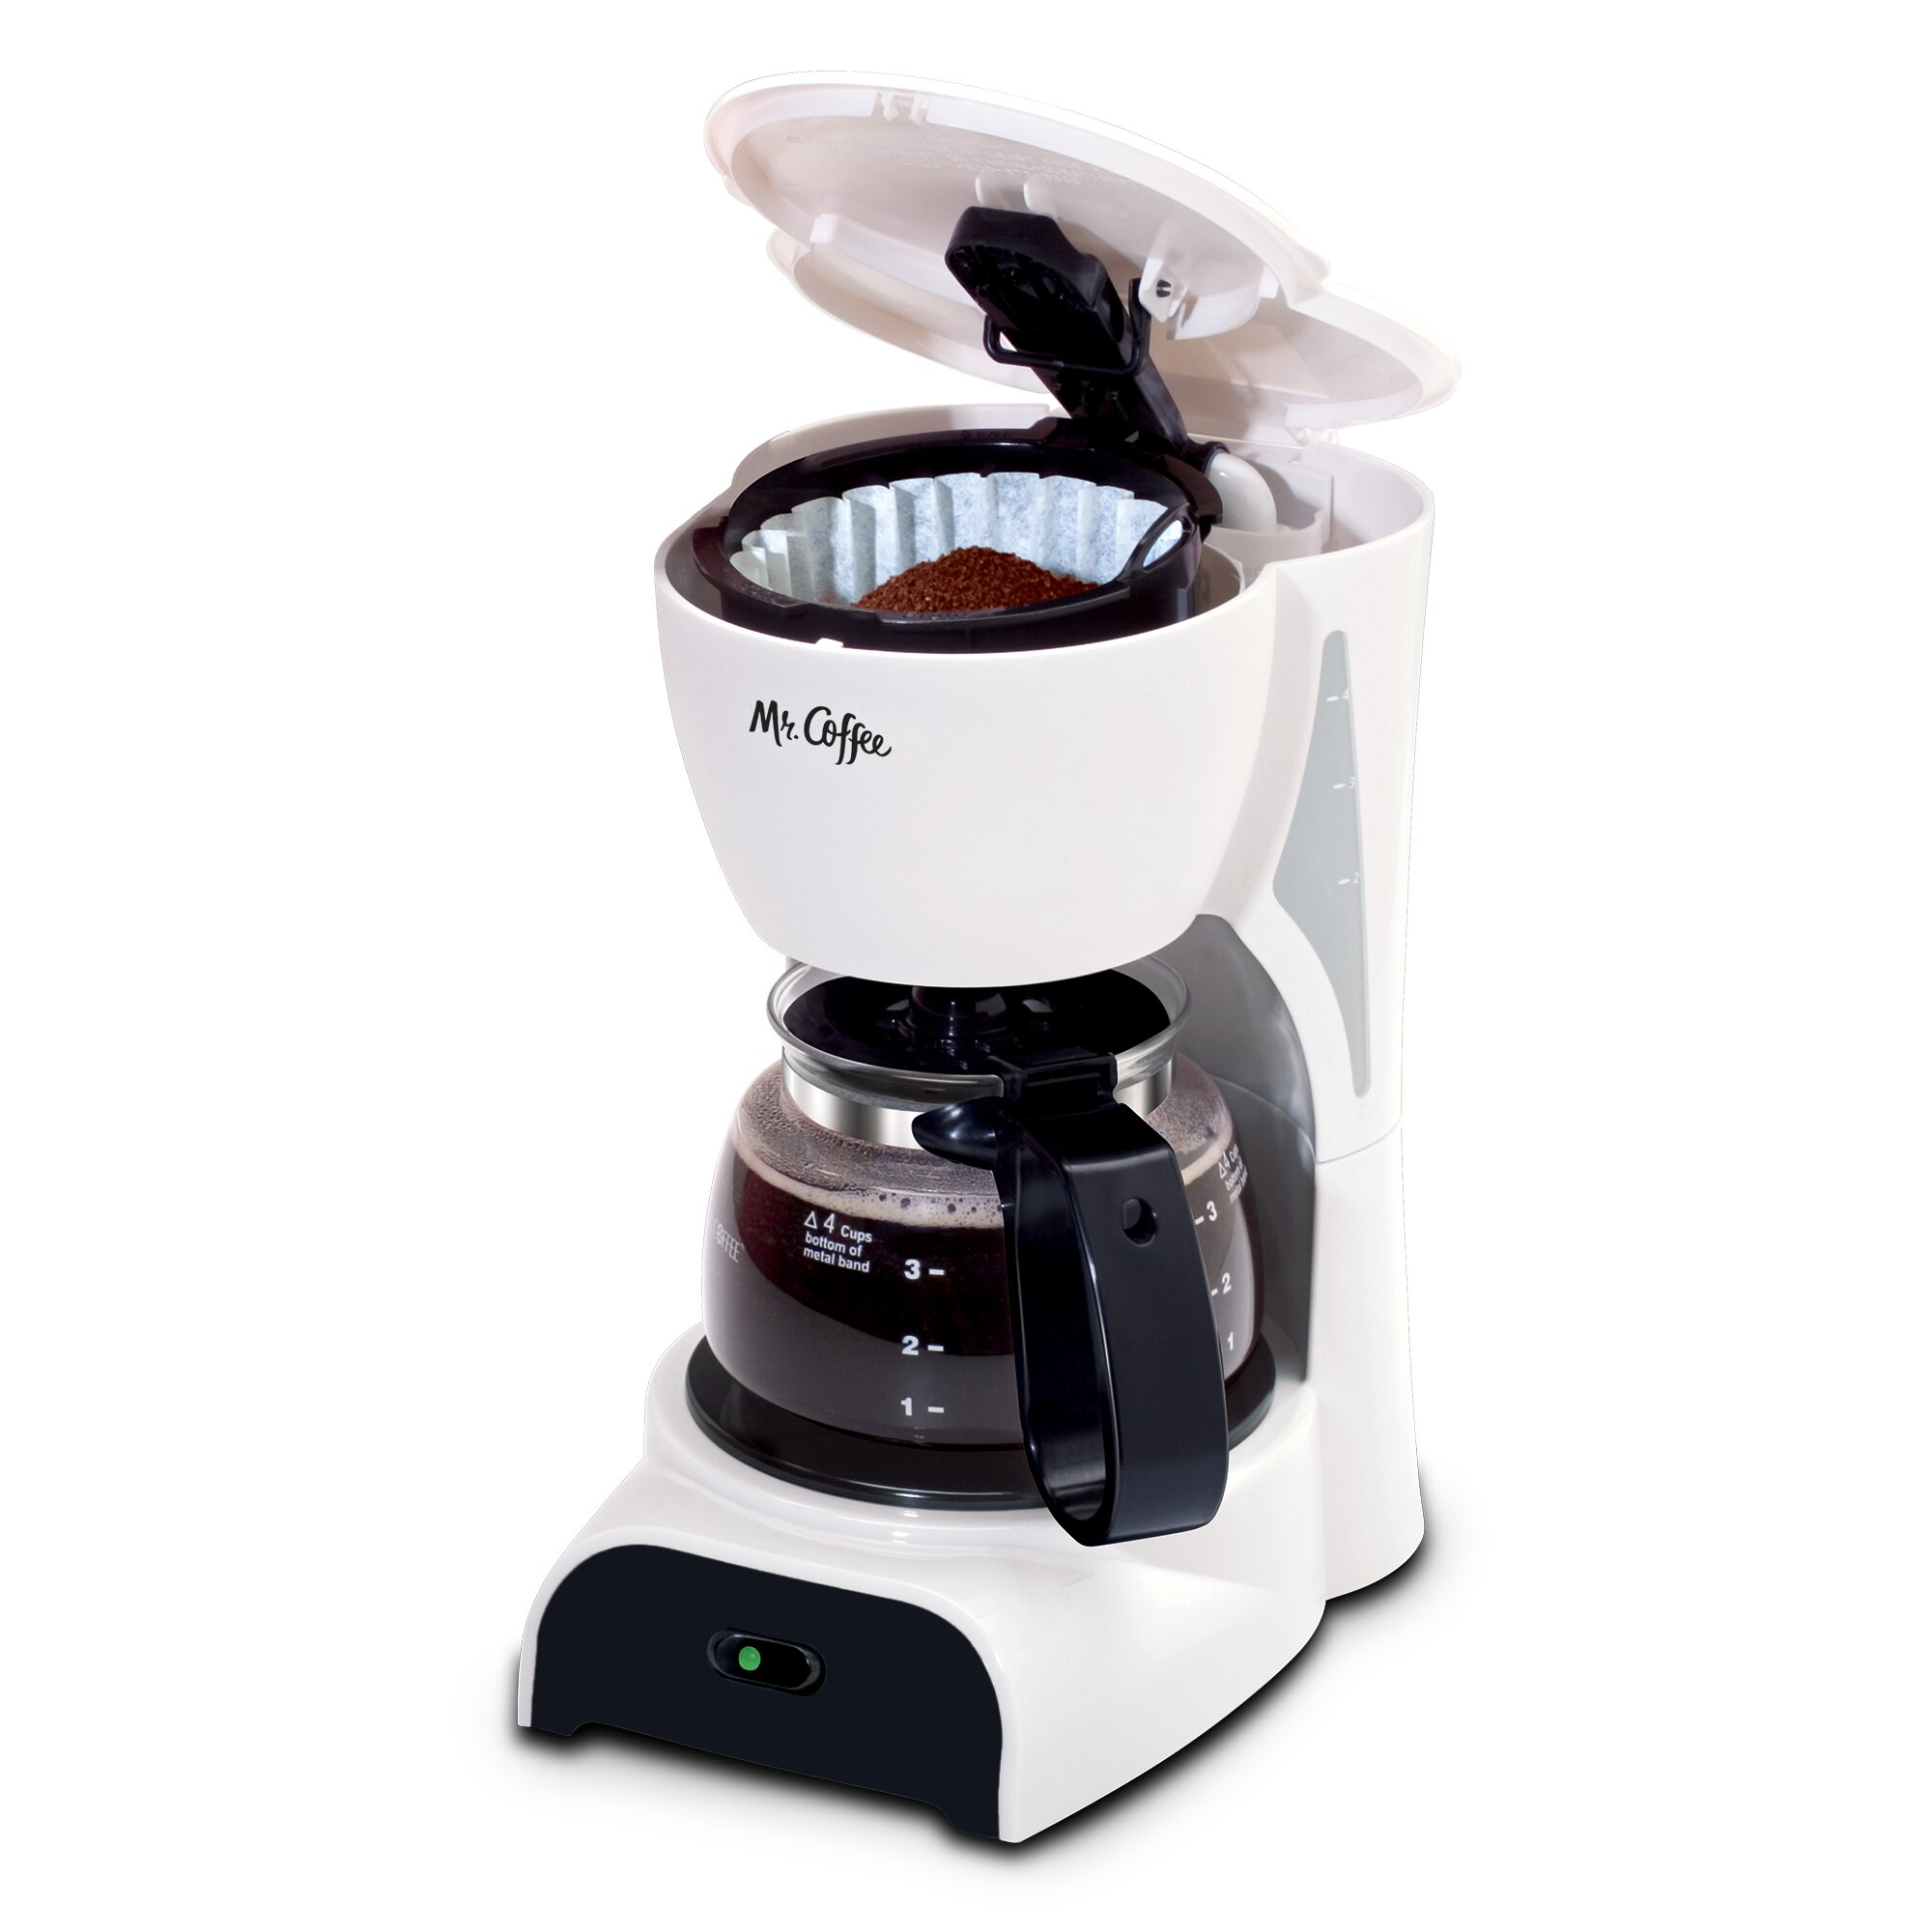 Coffee Maker Reviews 4 Cup : Mr. Coffee Simple Brew 4-Cup Switch Coffee Maker & Reviews Wayfair